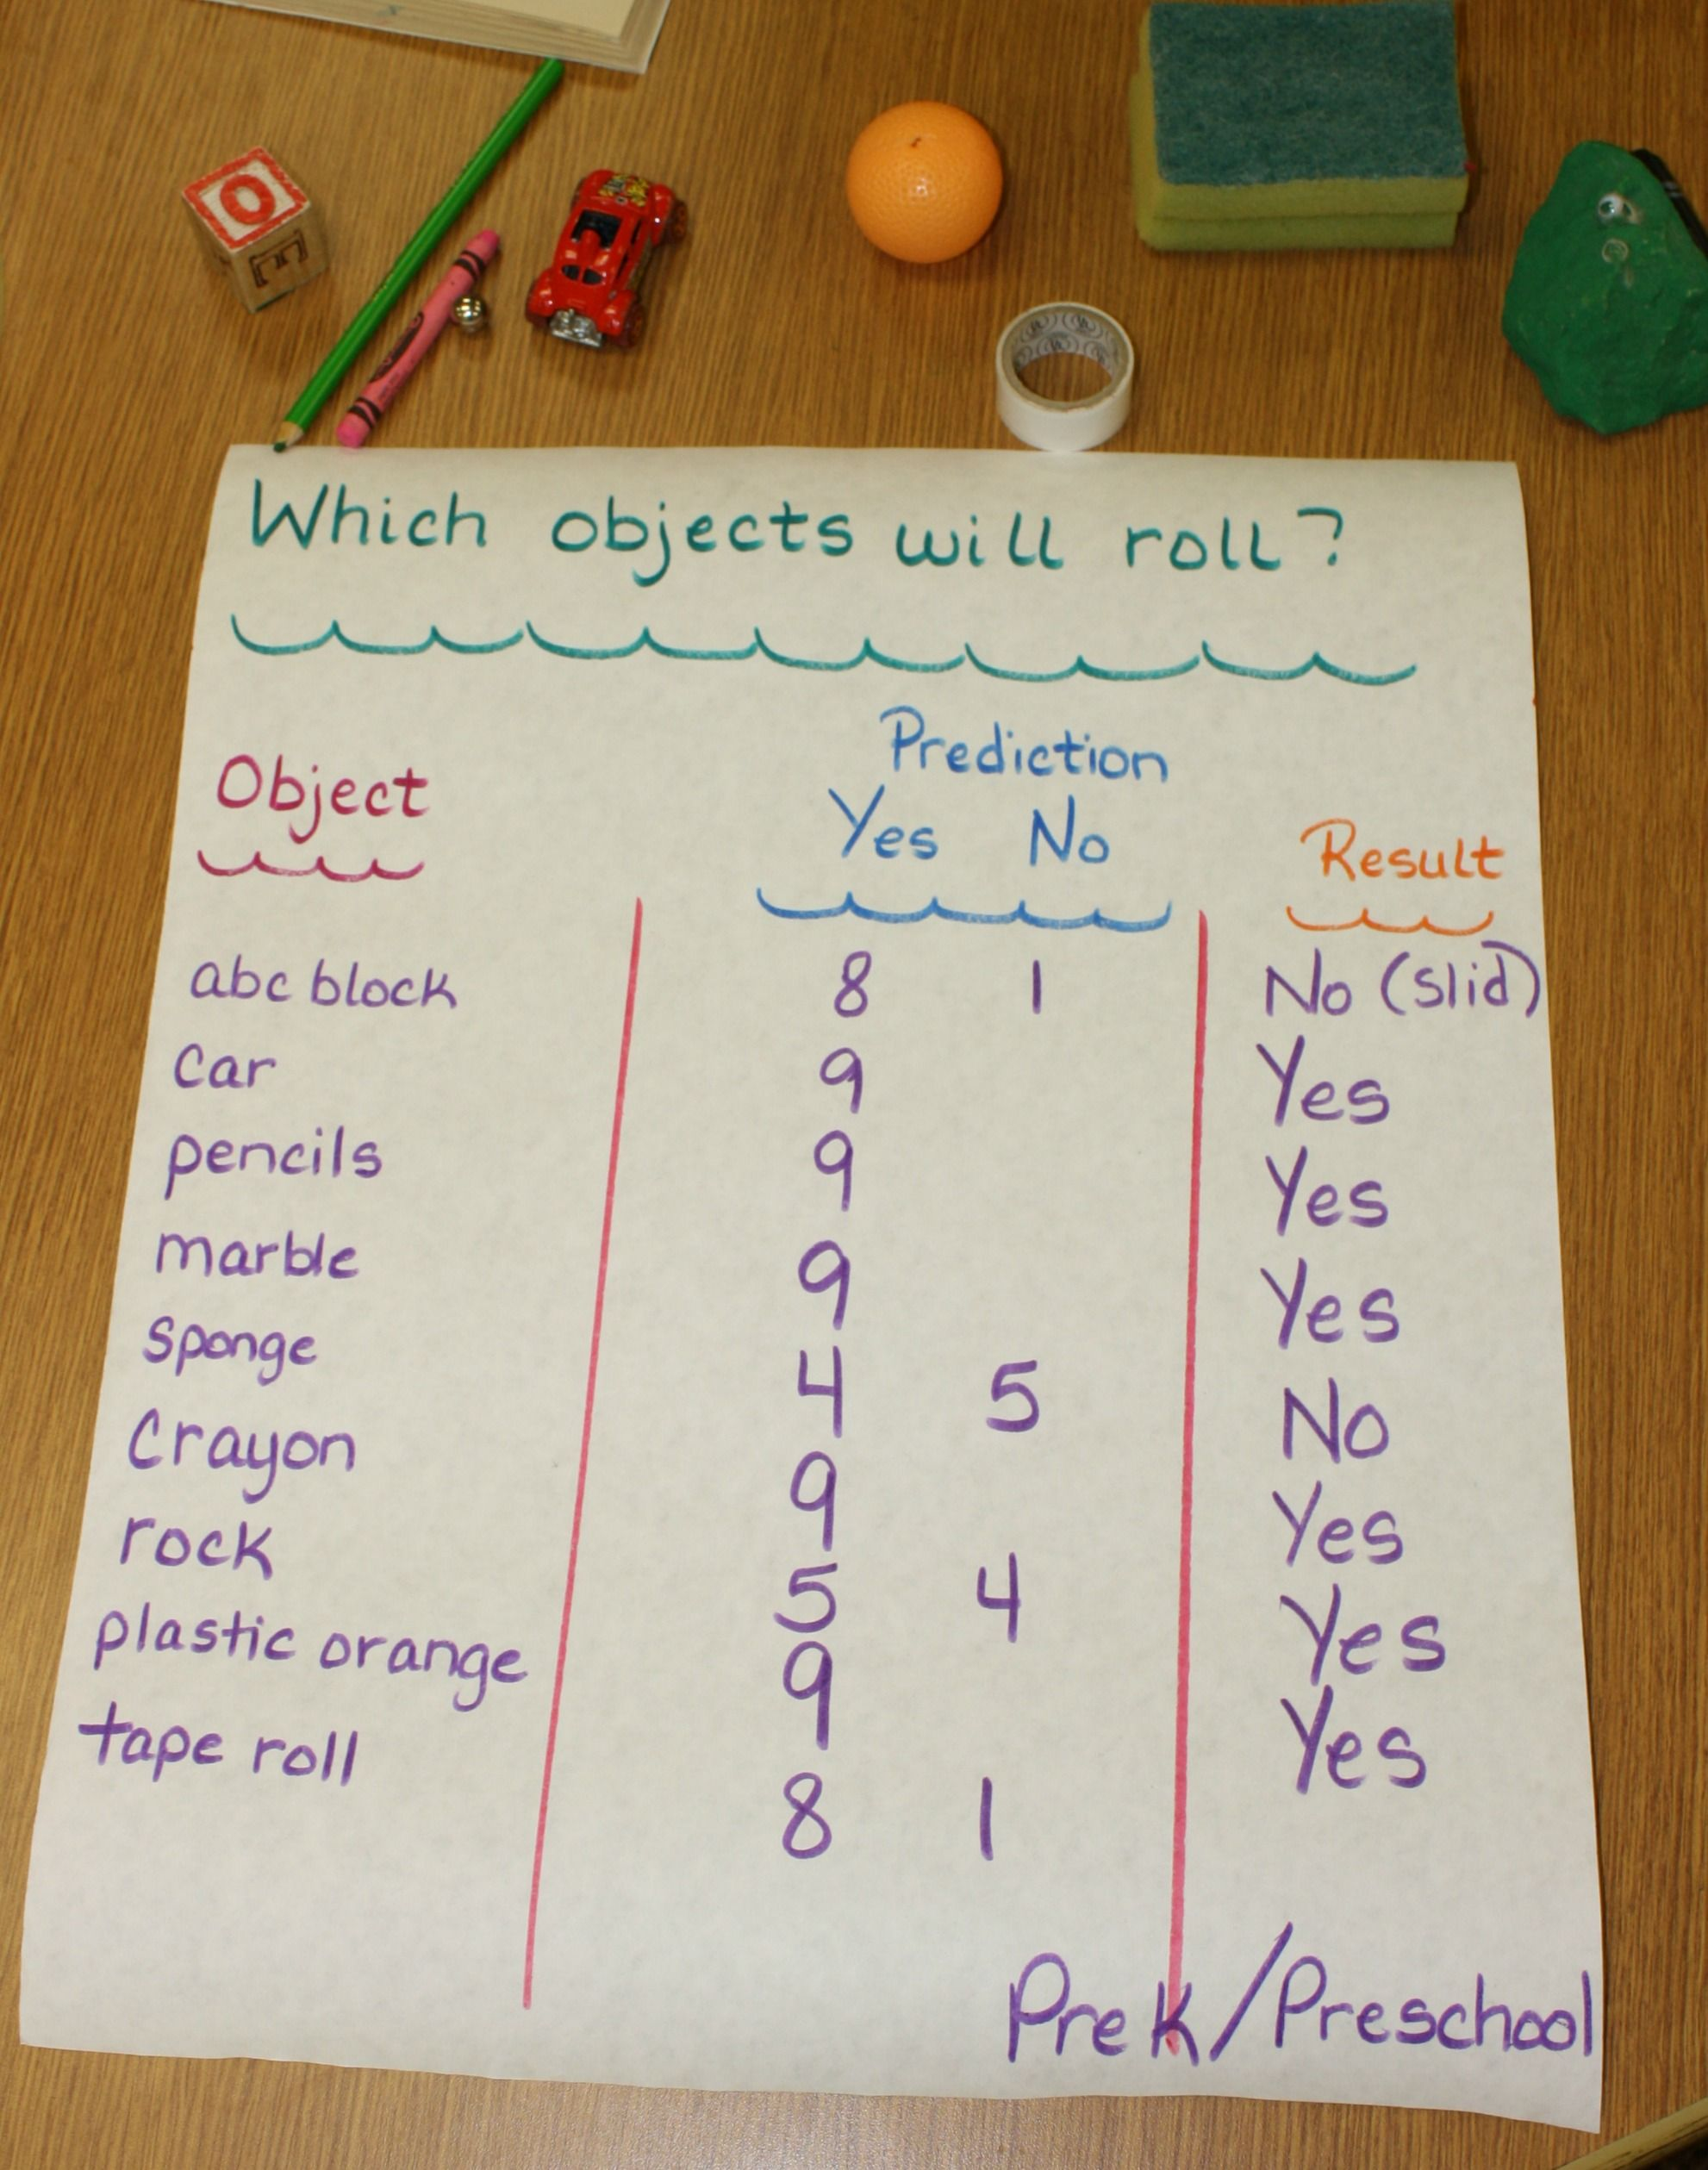 During Our Transportation Week We Made A Prediction Chart On Objects That Would Roll Let